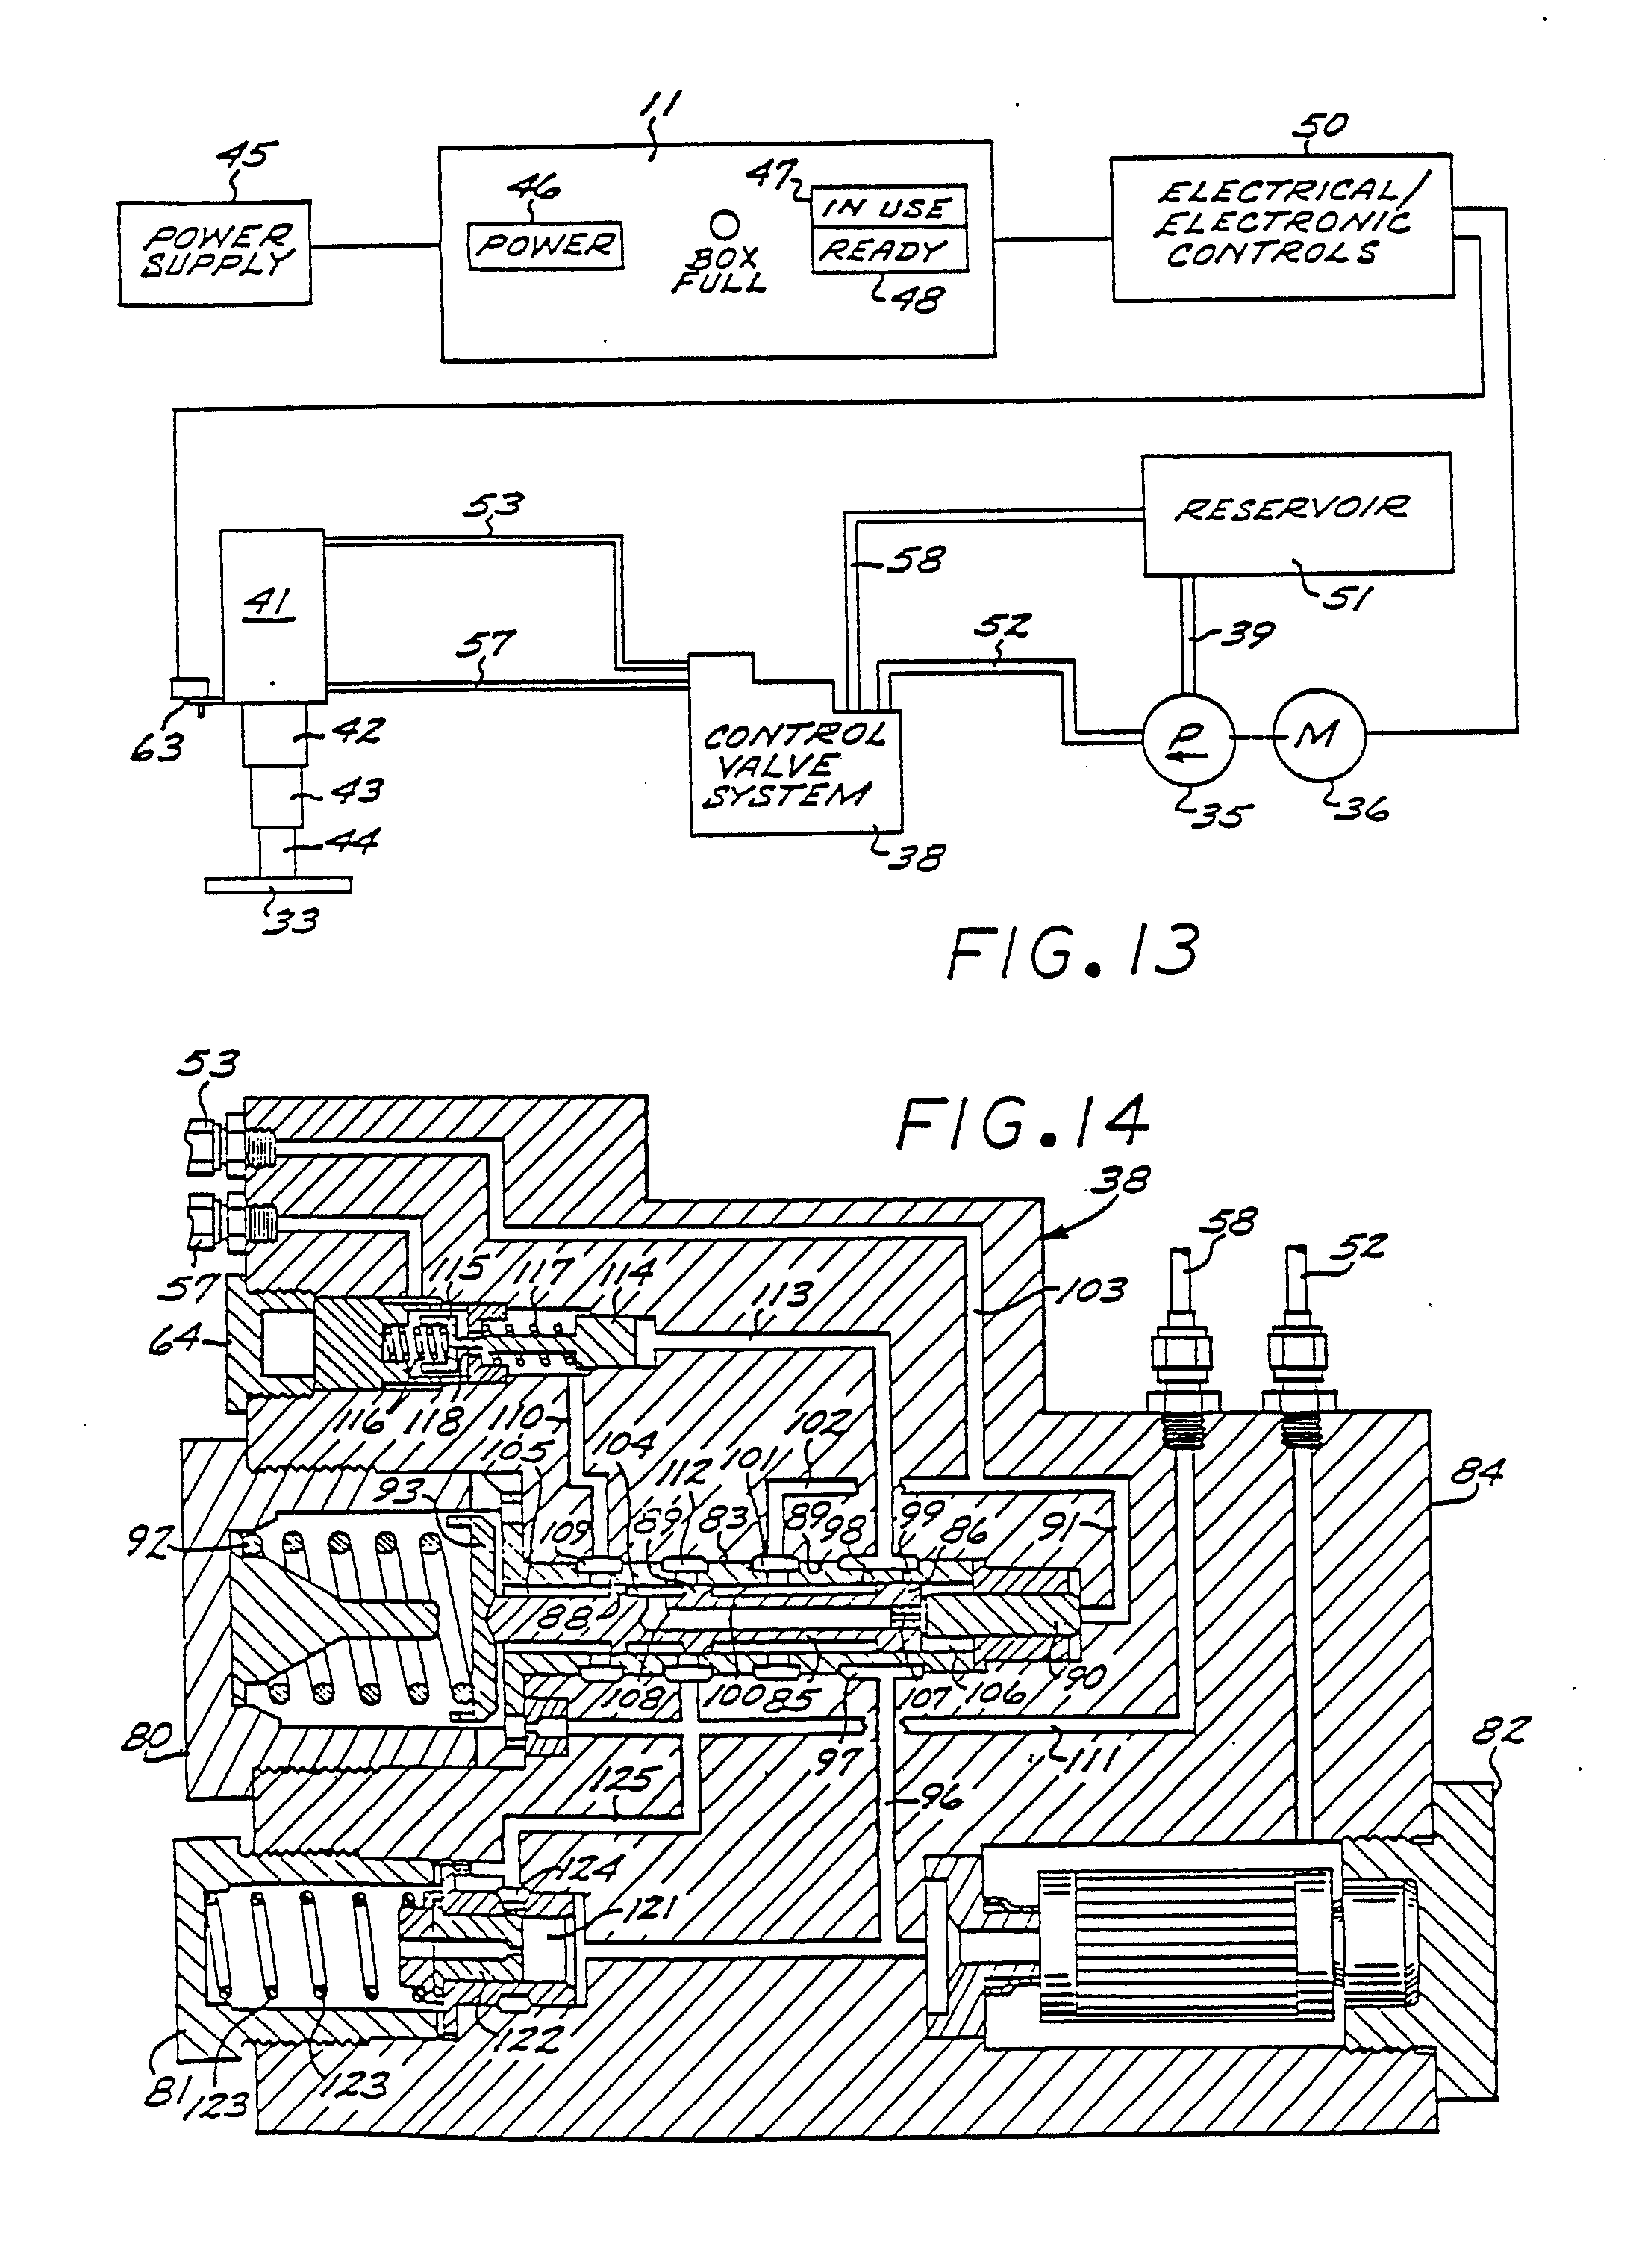 Patent Ep0268709a1 - Trash Compactor